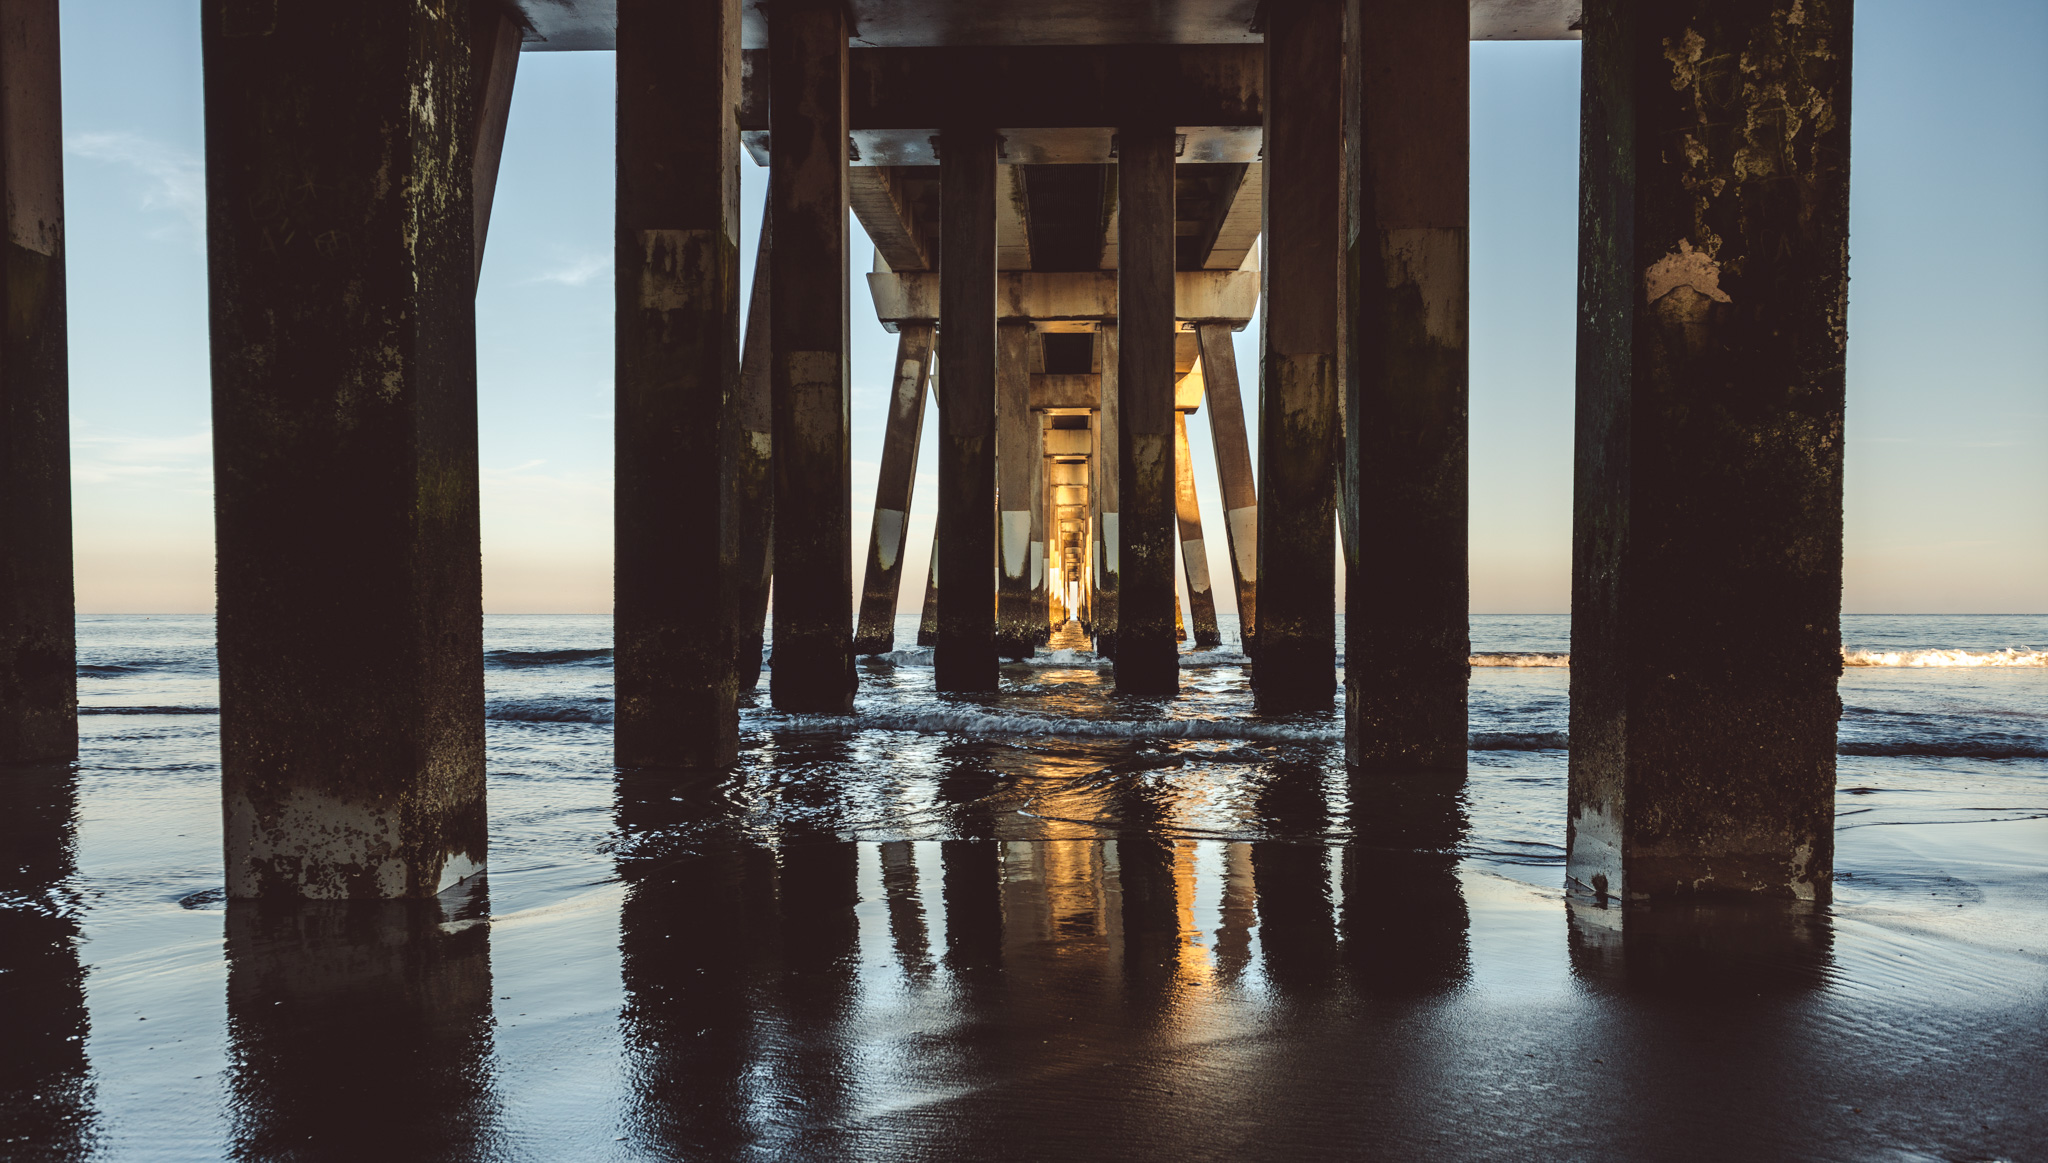 North Carolina : Outer Banks : Nags Head : Jennette's Pier